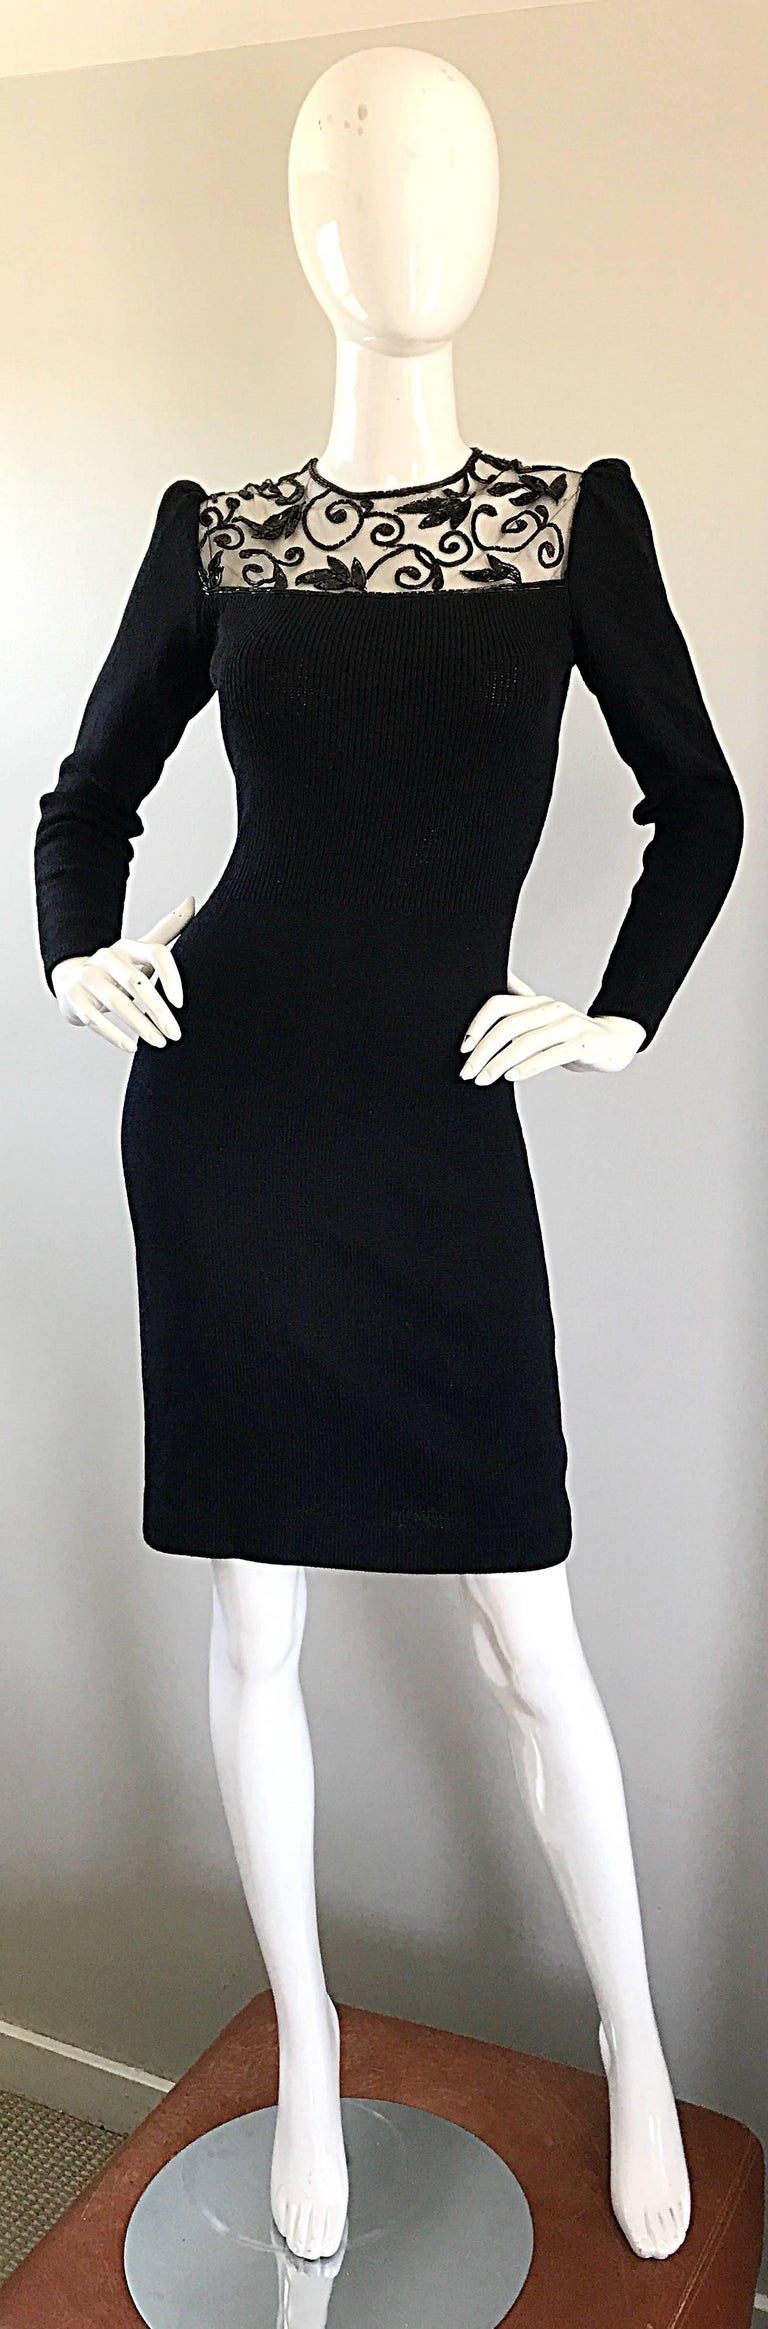 Vintage St John by Marie Gray Black Santana Knit Sequin Cut-Out Back 1990s Dress In Excellent Condition For Sale In San Francisco, CA